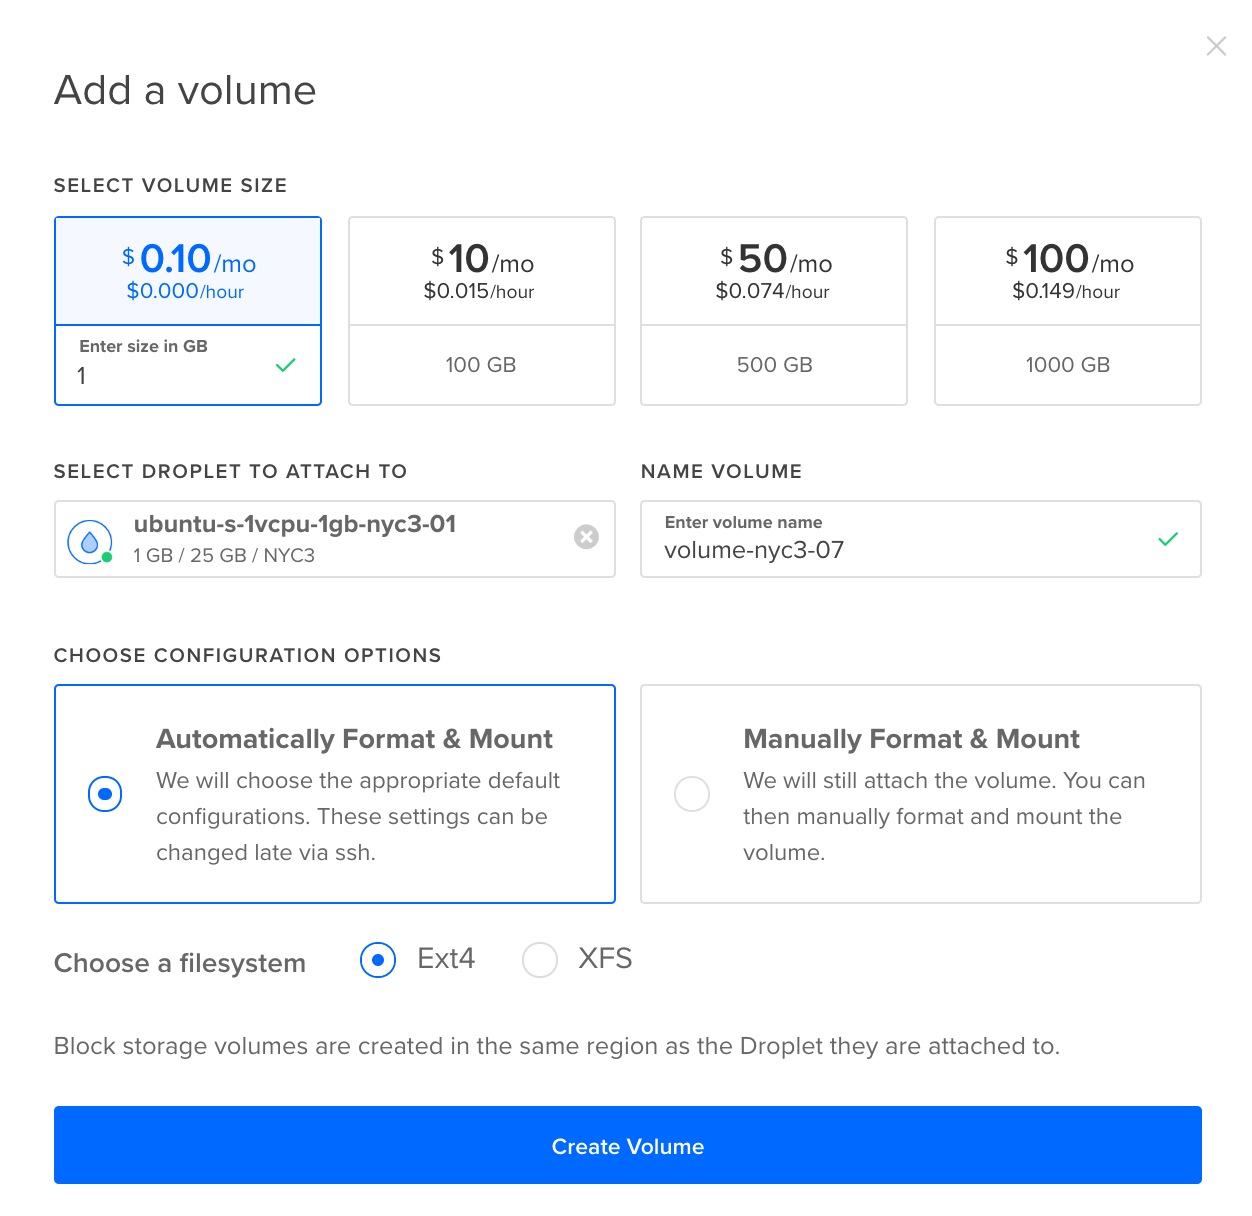 DigitalOcean Control Panel view of setting up volumes